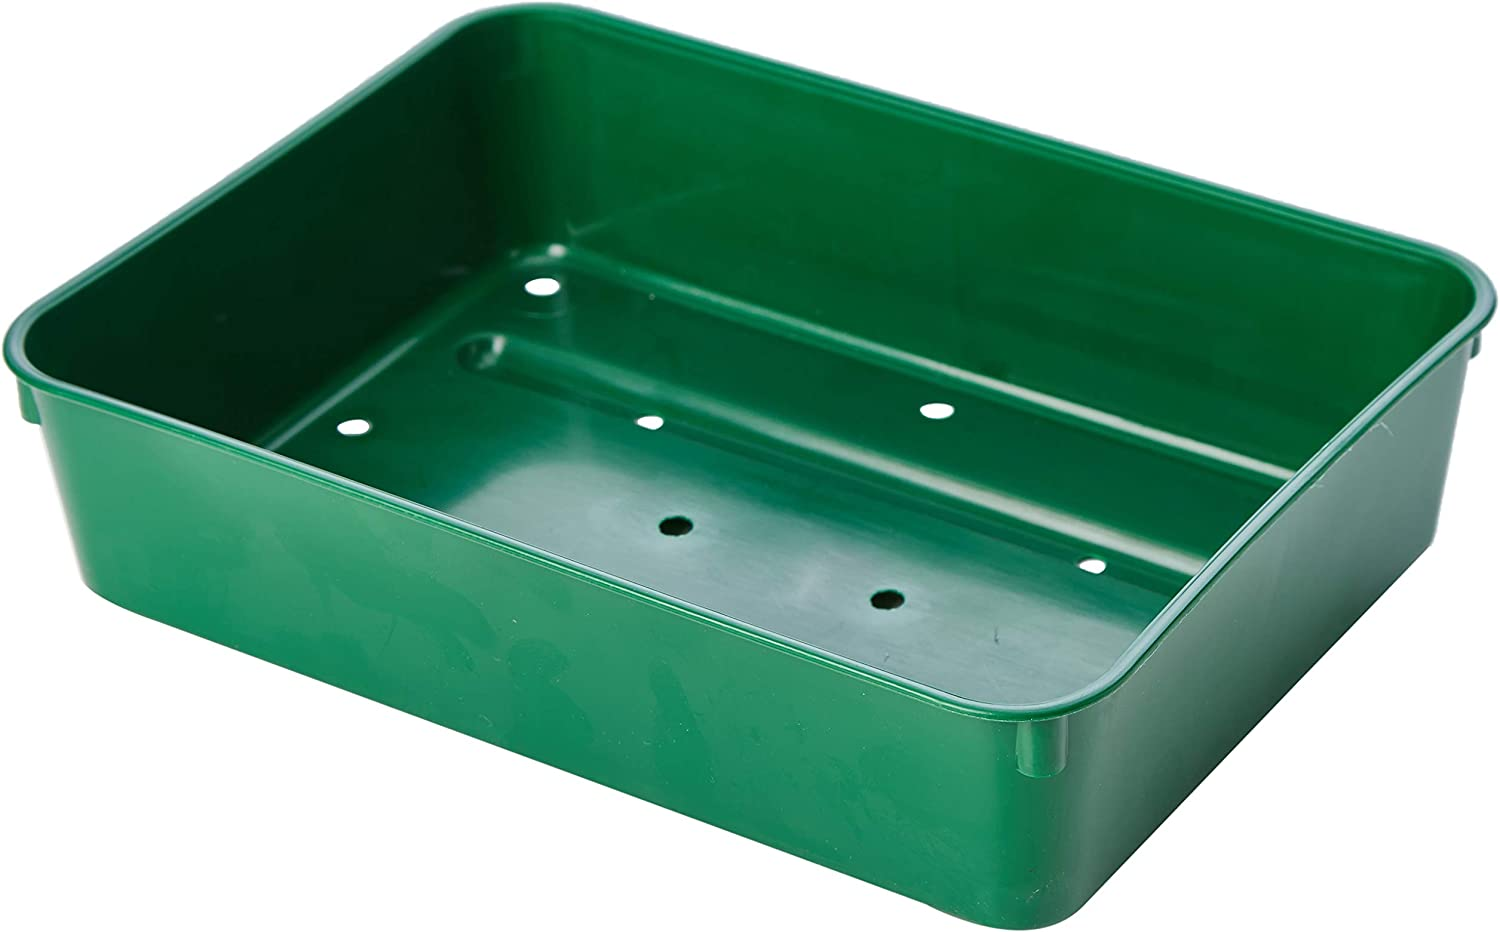 x 42cm H 52cm Greenhouse /& Conservatory Seed Tray Large Garden W Set of 5 Green Trays L x 8cm